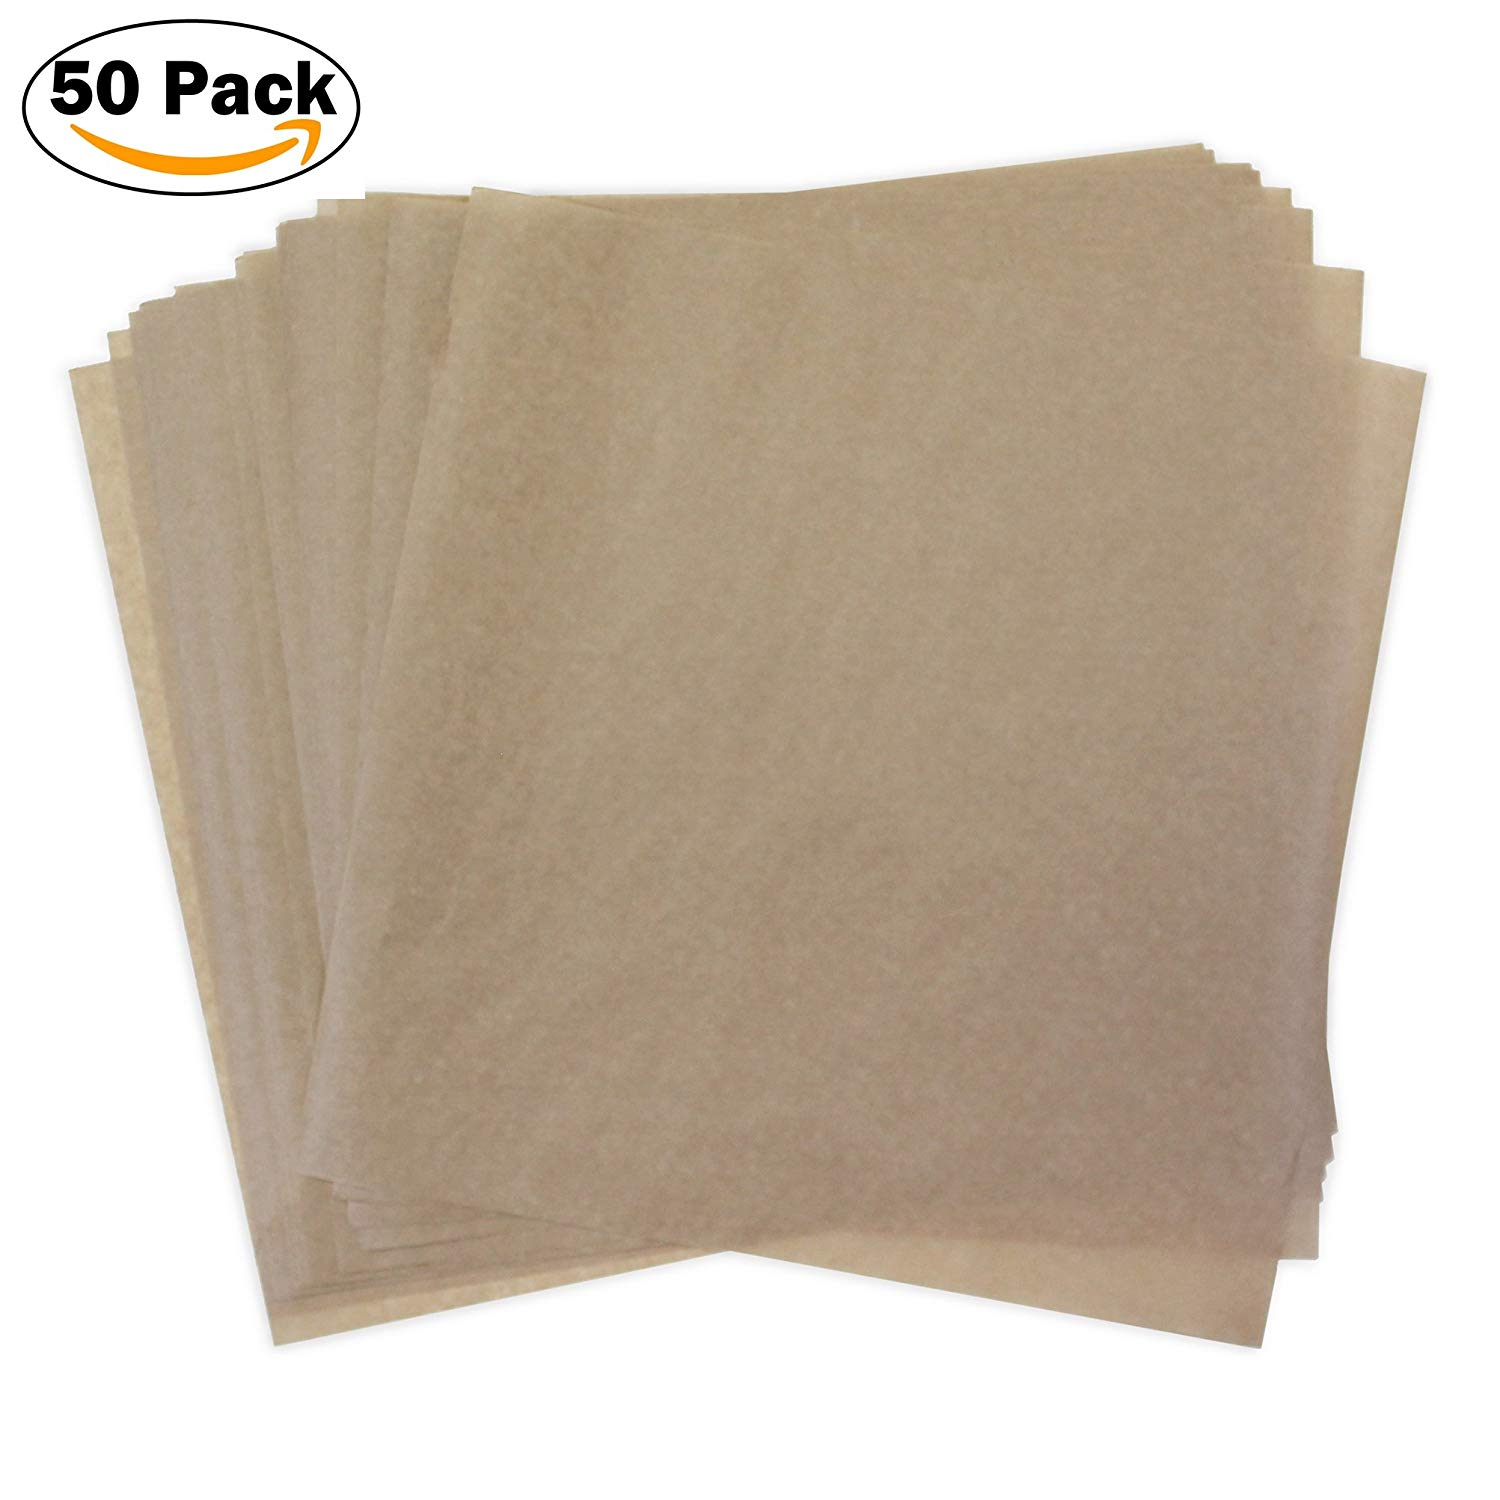 Kraft Dry Wax Paper Deli Wrap and Basket Liner (Natural Brown 12x12, pack of 50)